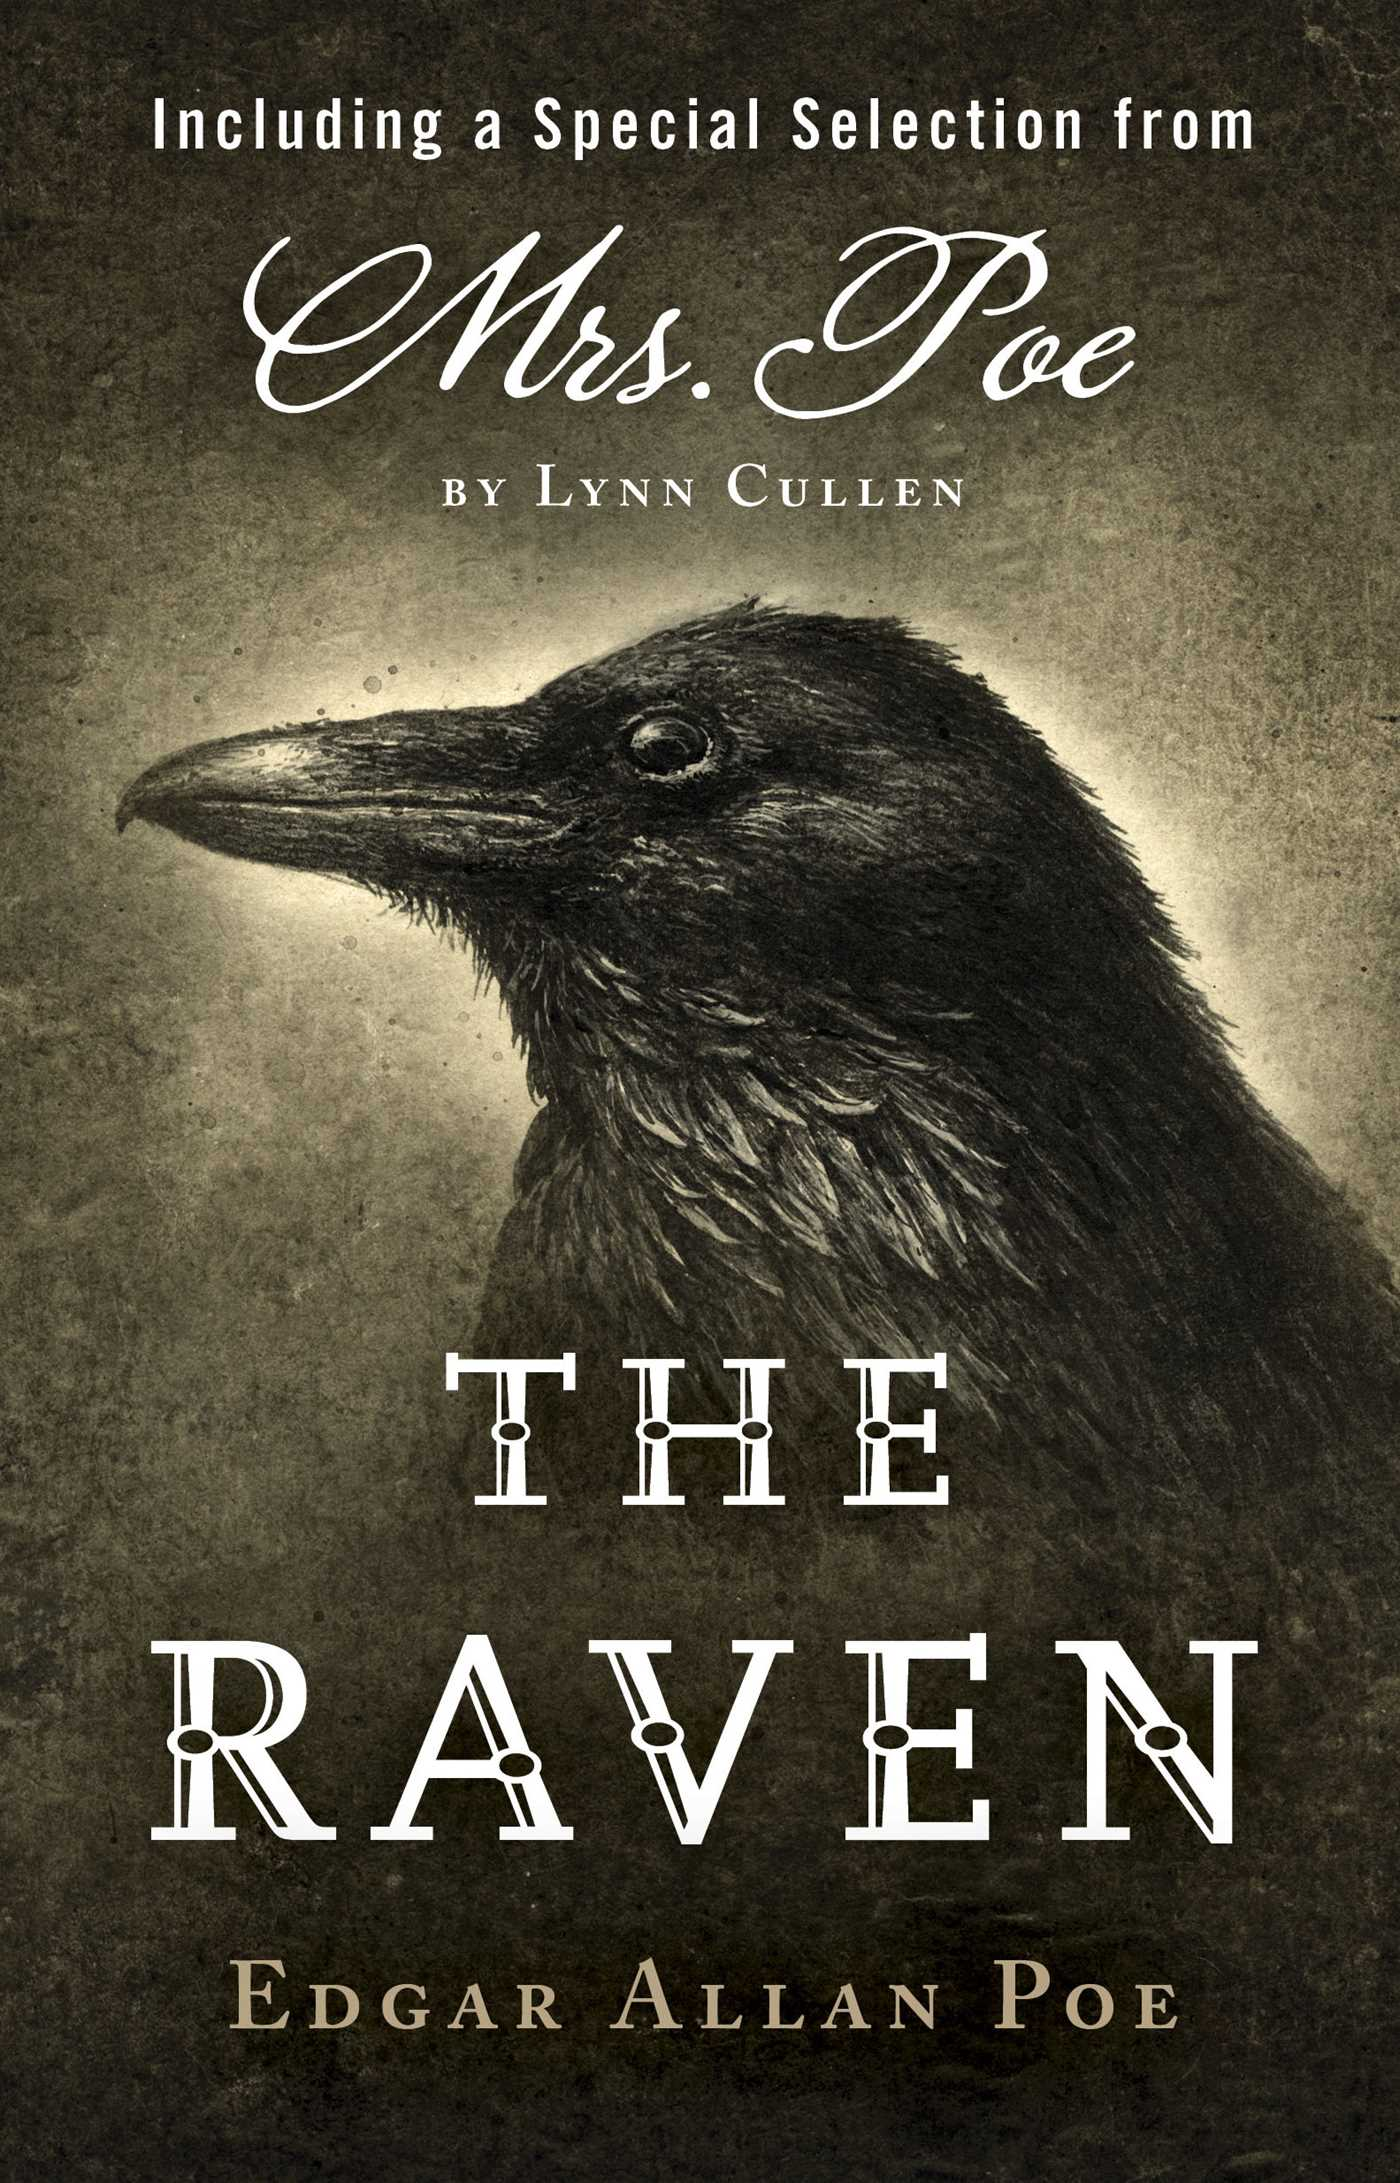 edgar allen poe s the raven a Edgar allan poe (/ p oʊ / born edgar poe january 19, 1809 - october 7, 1849) was an american writer, editor, and literary critic poe is best known for his poetry and short stories, particularly his tales of mystery and the macabre.